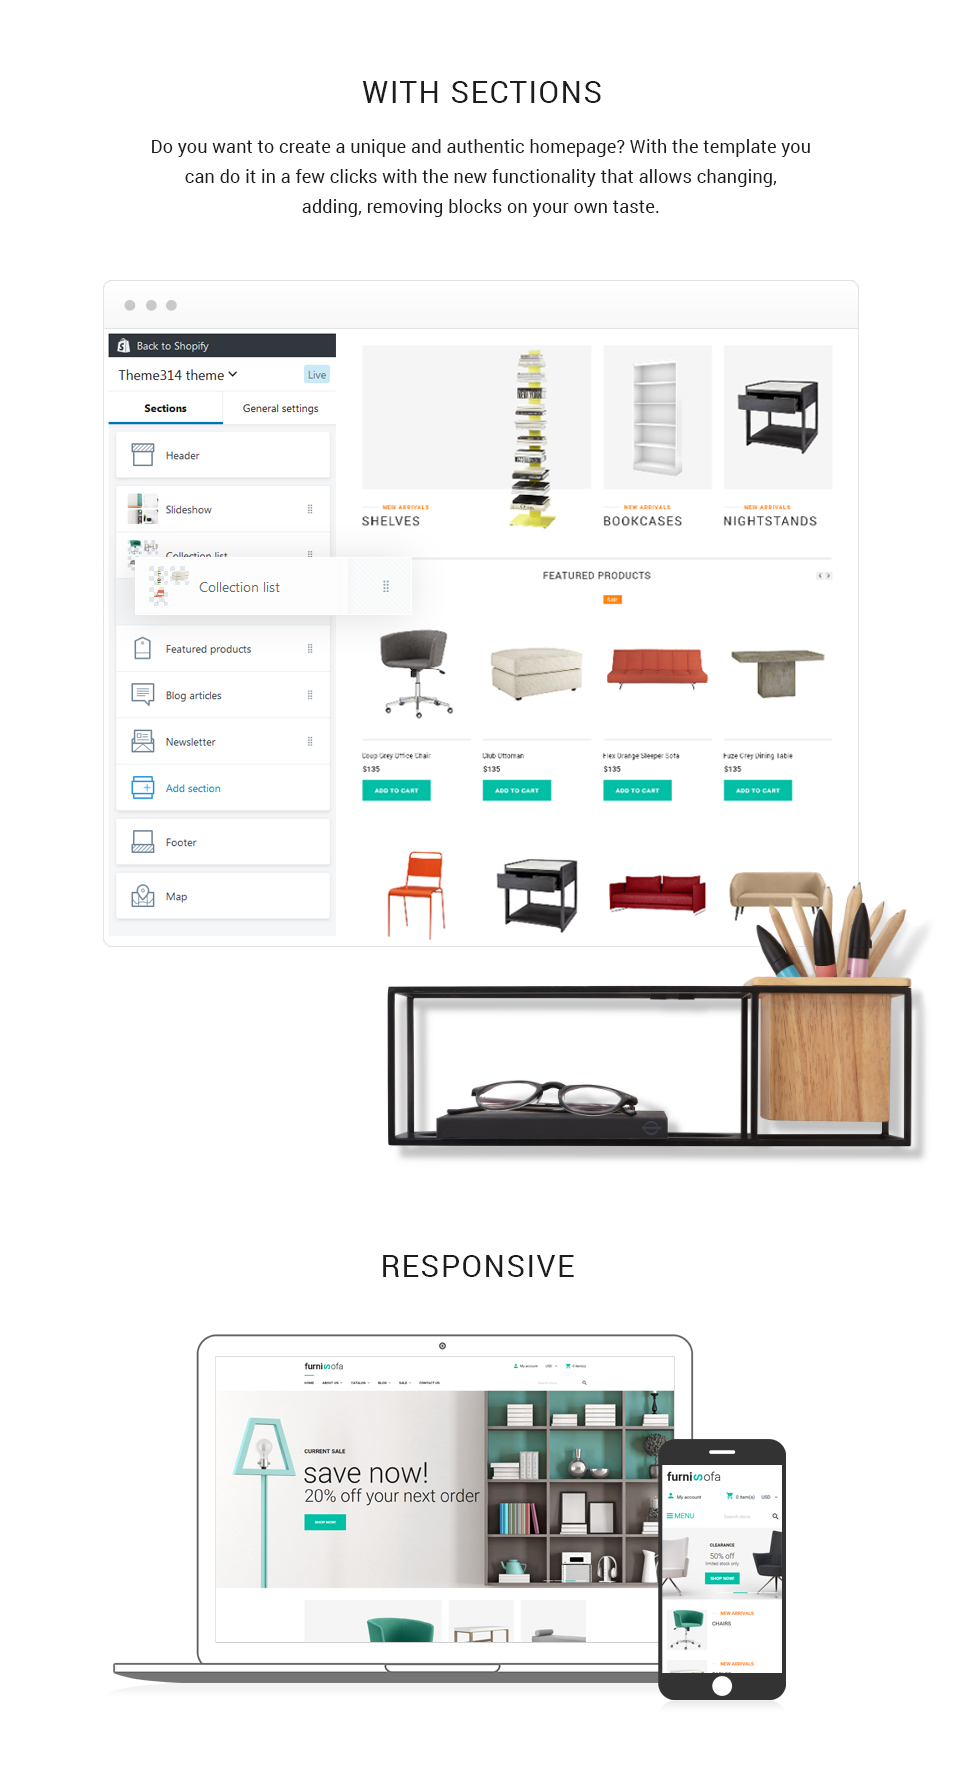 Furnisofa - Responsive Shopify Theme With Sections - 2